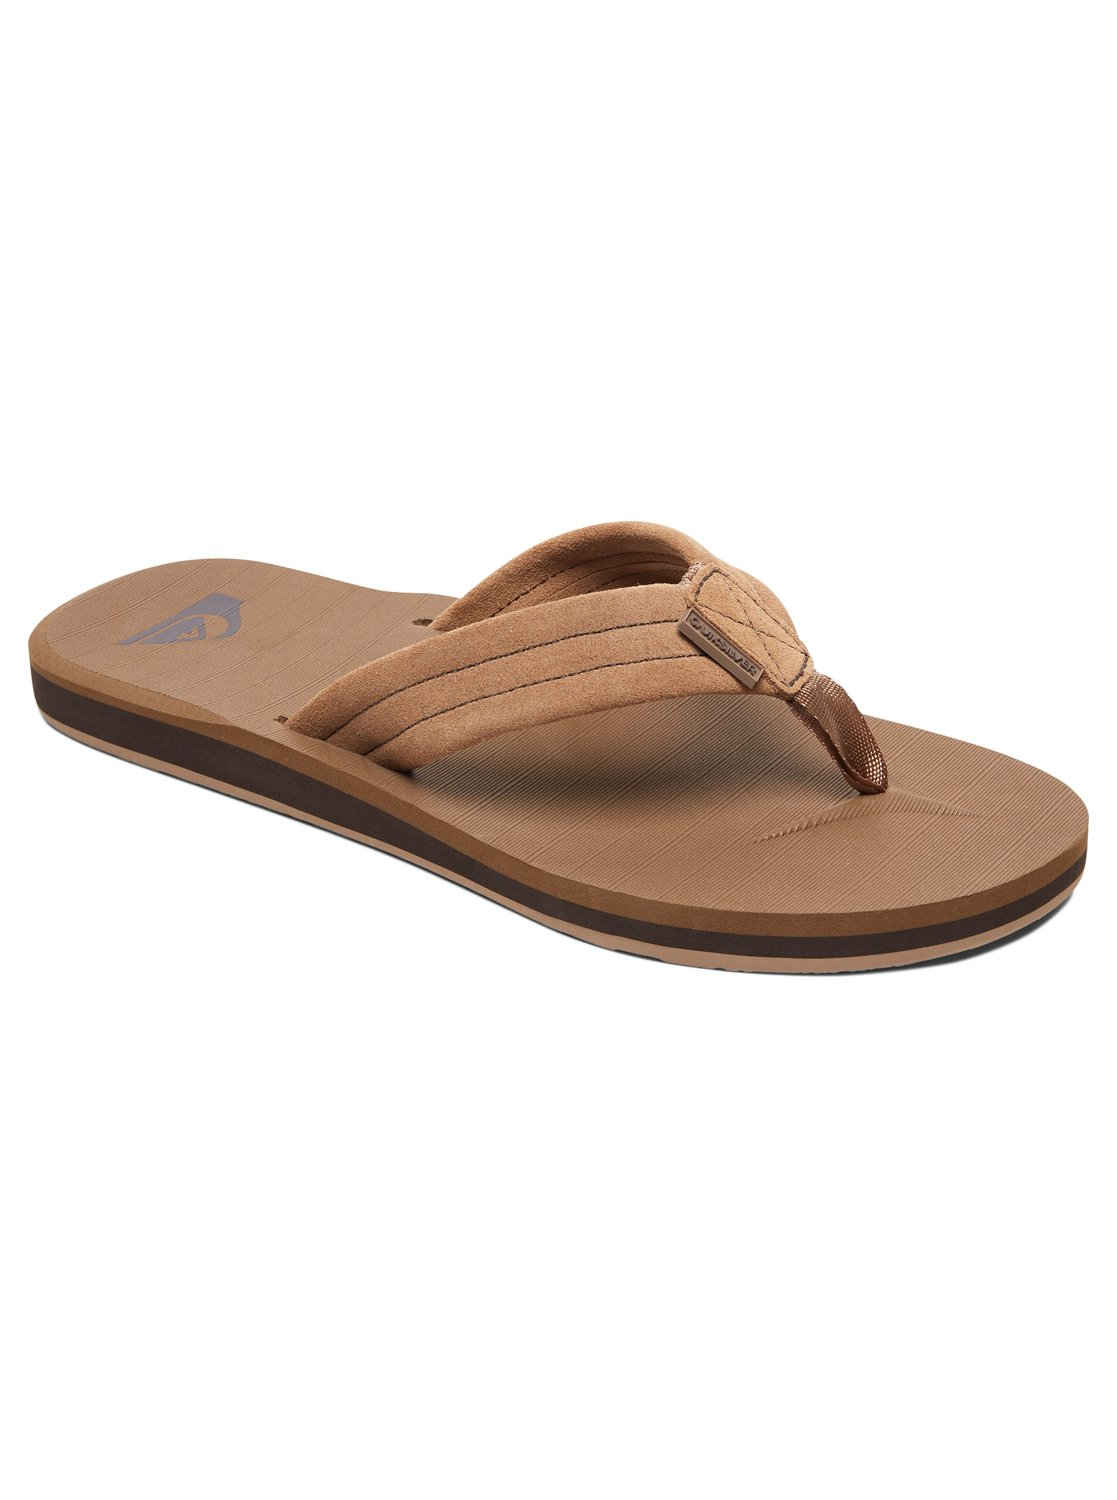 3f4766ec4923 Quiksilver™ Carver - Leather Sandals - Men - EU 39 - Beige